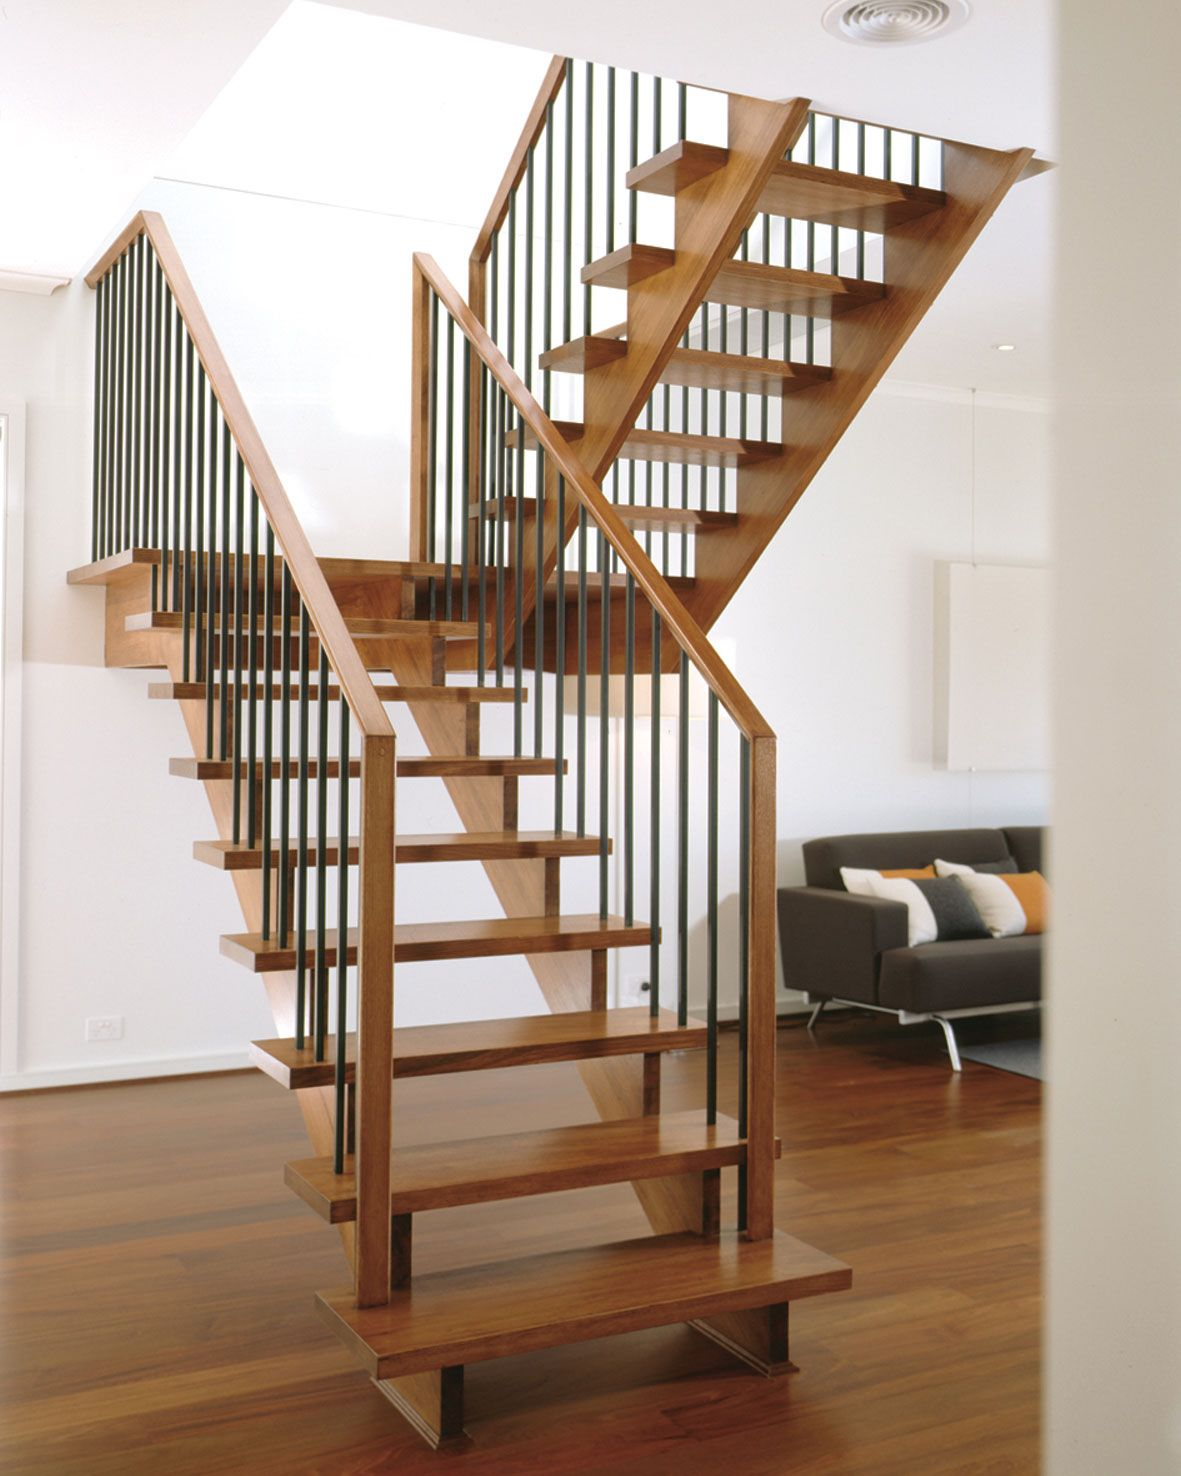 Staircase Designs Stunning Staircase Designs In Home Interior With Wooden Flooring